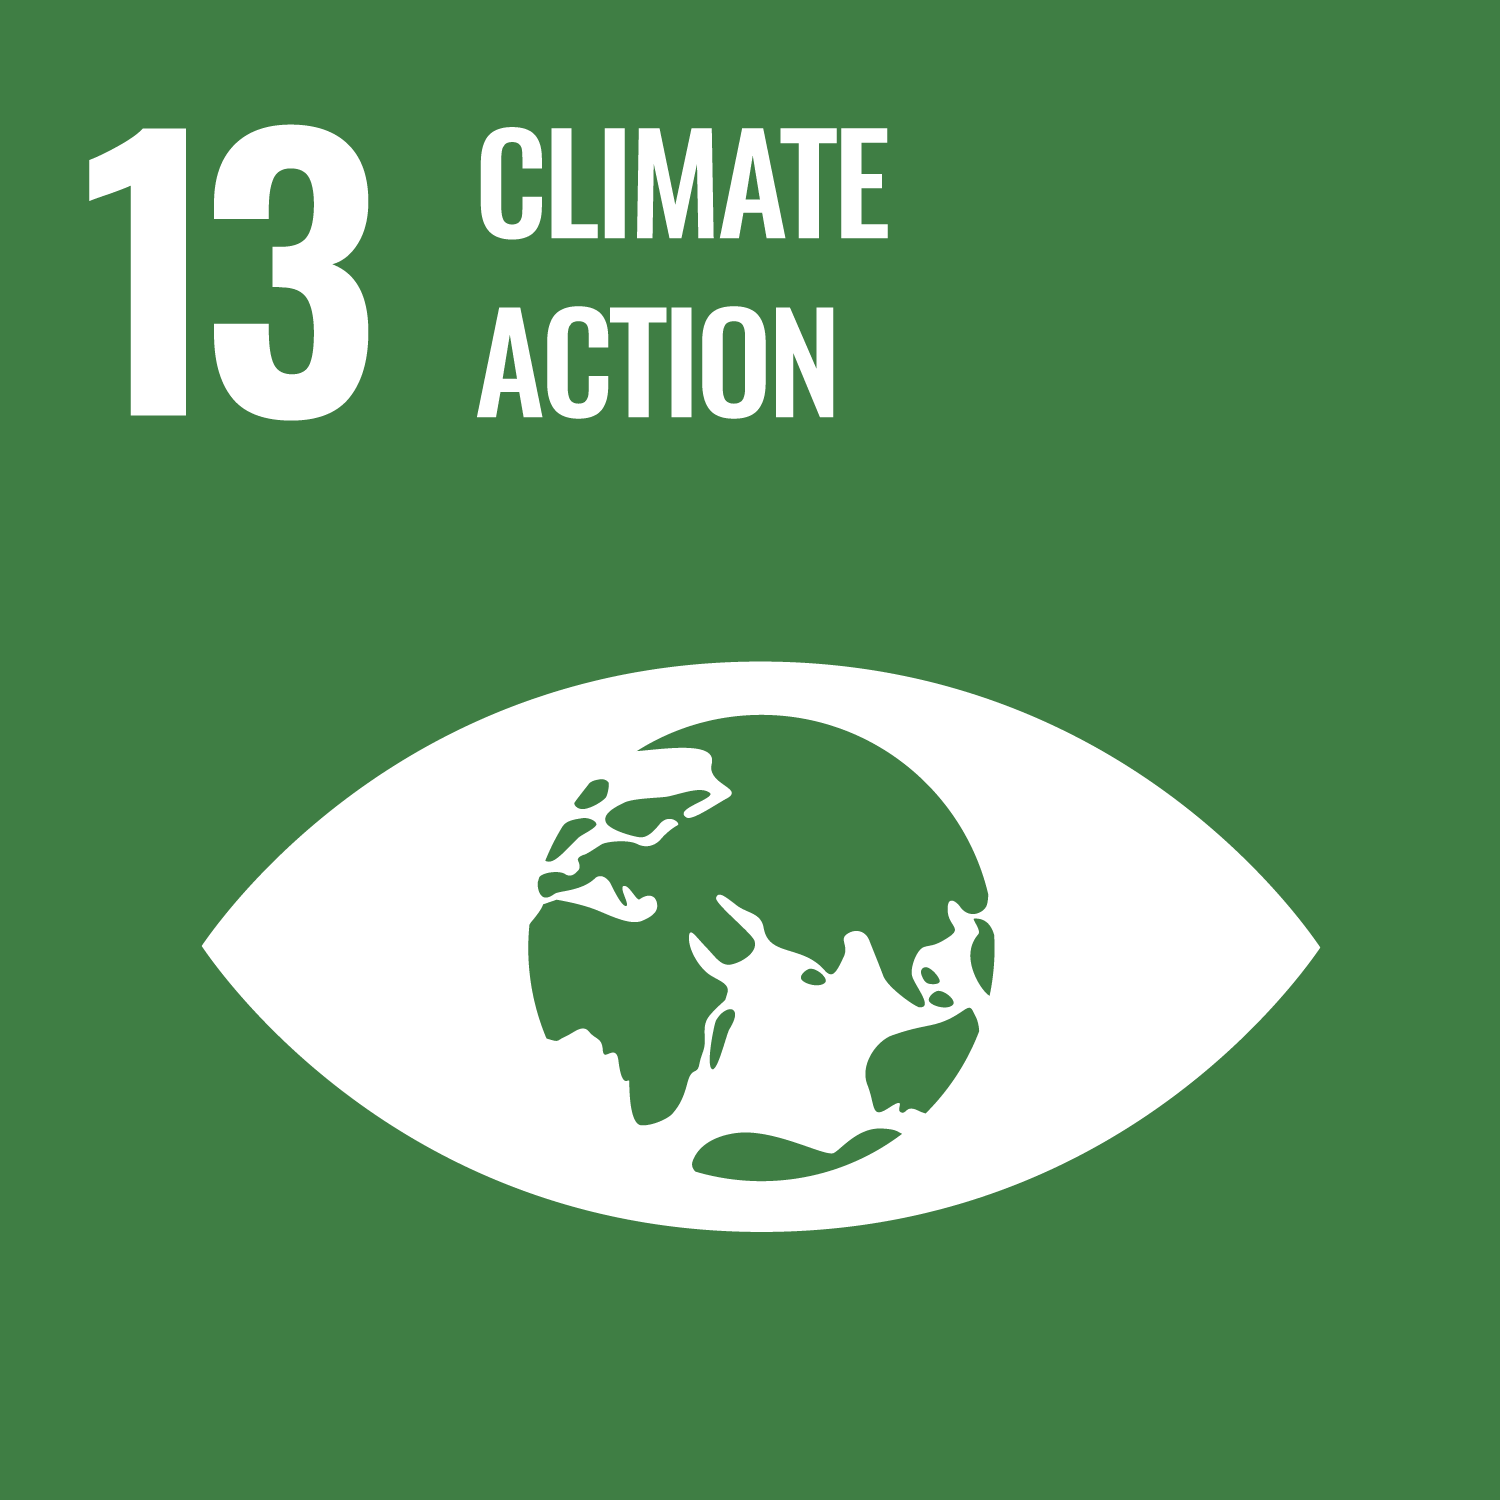 Sustainable Development Goals – Climate Action